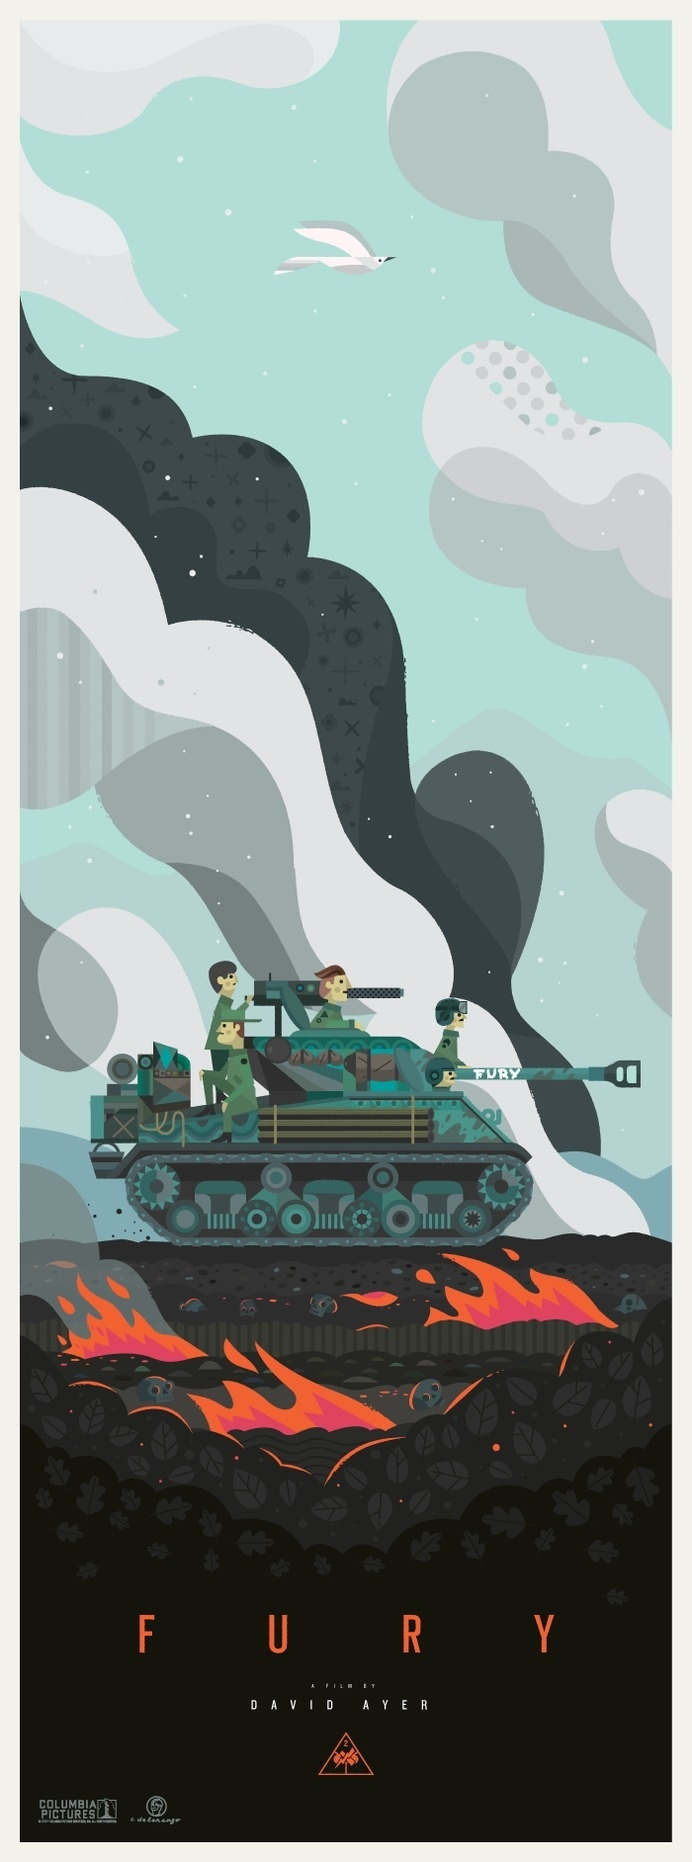 Fury Movie Poster (2014) #design #graphic #fury #illustration #poster